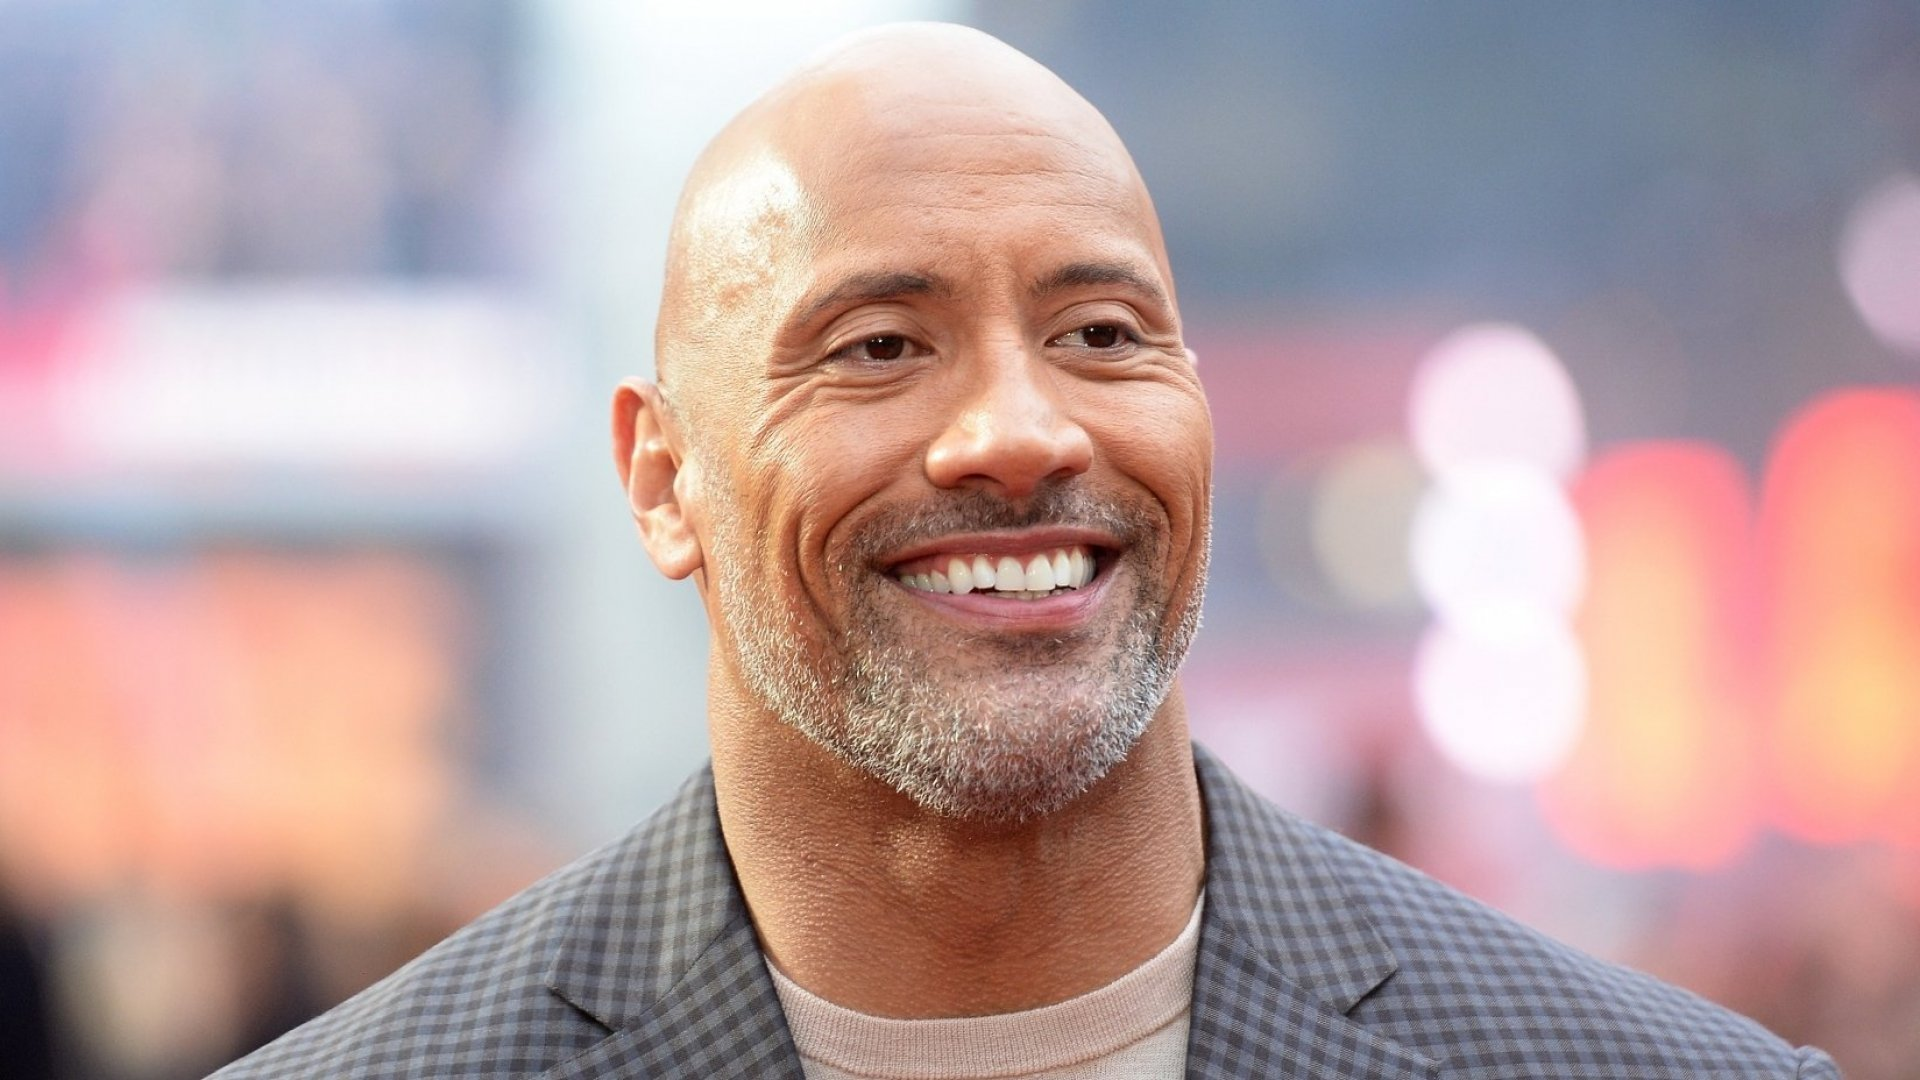 'The Rock' for President: How Dwayne Johnson's Leadership Model Could Create a New Blueprint for Political Campaigns